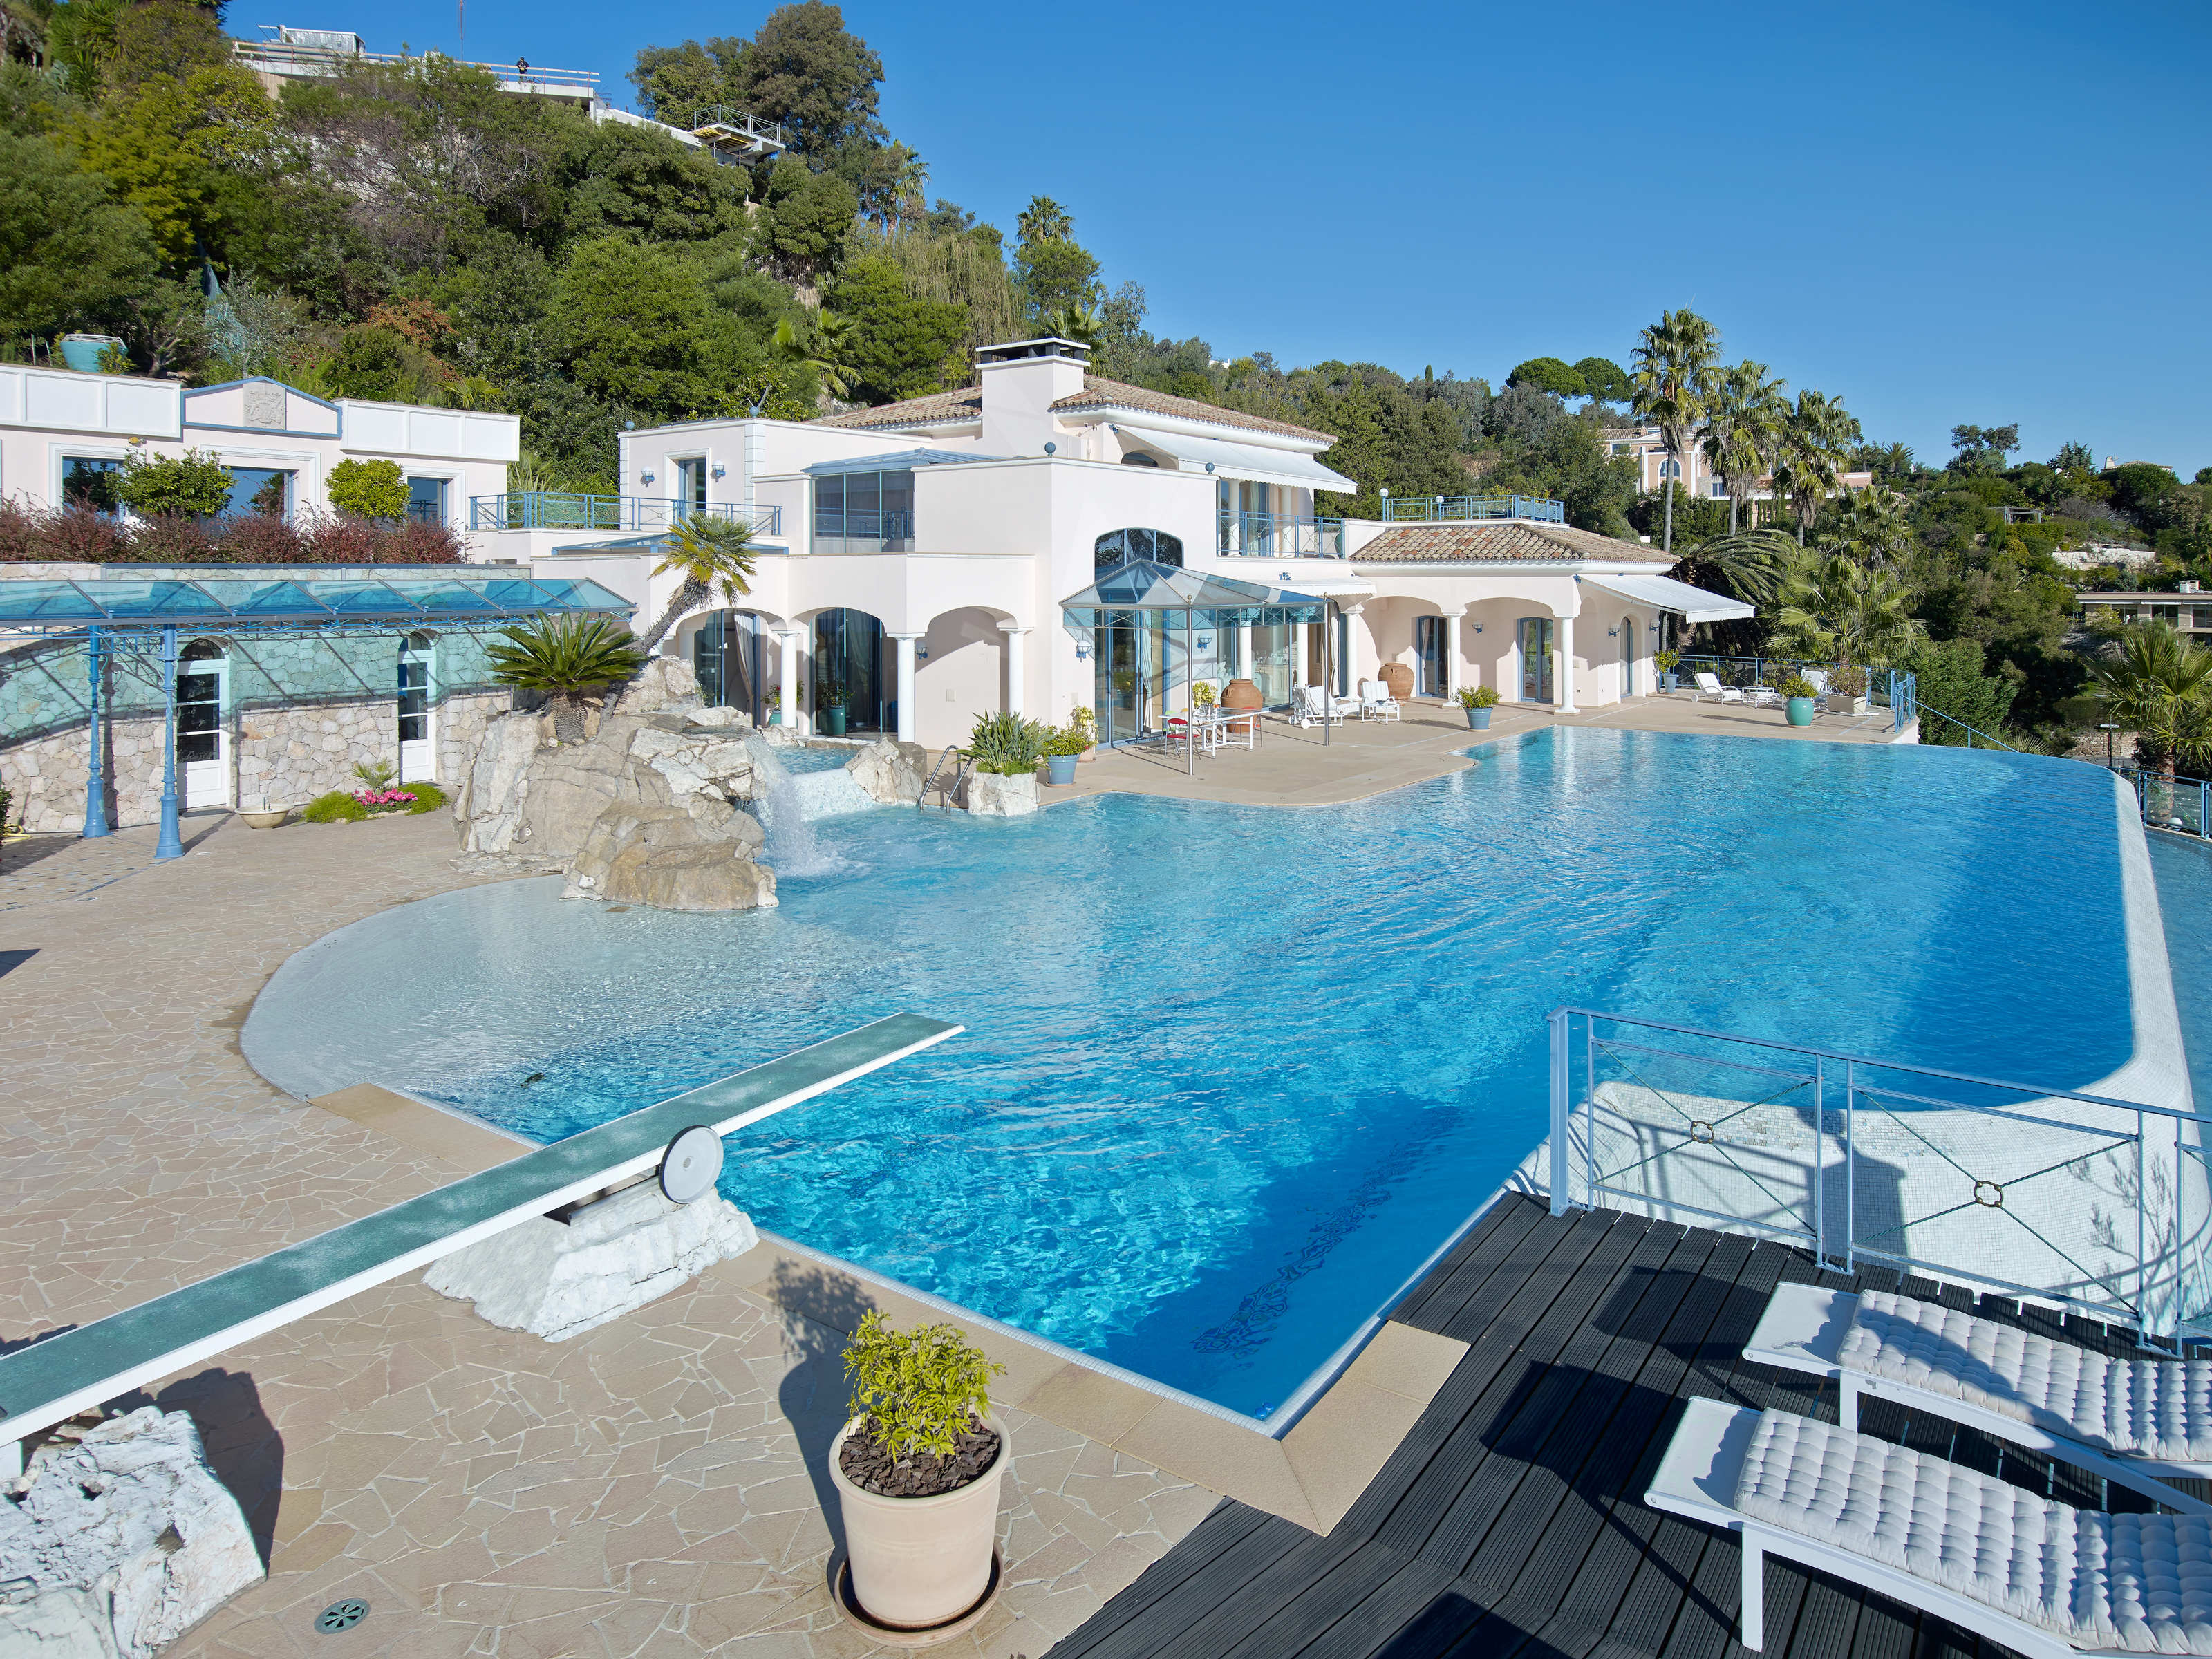 Single Family Home for Sale at One of the most beautiful villas Cannes, Provence-Alpes-Cote D'Azur 06400 France